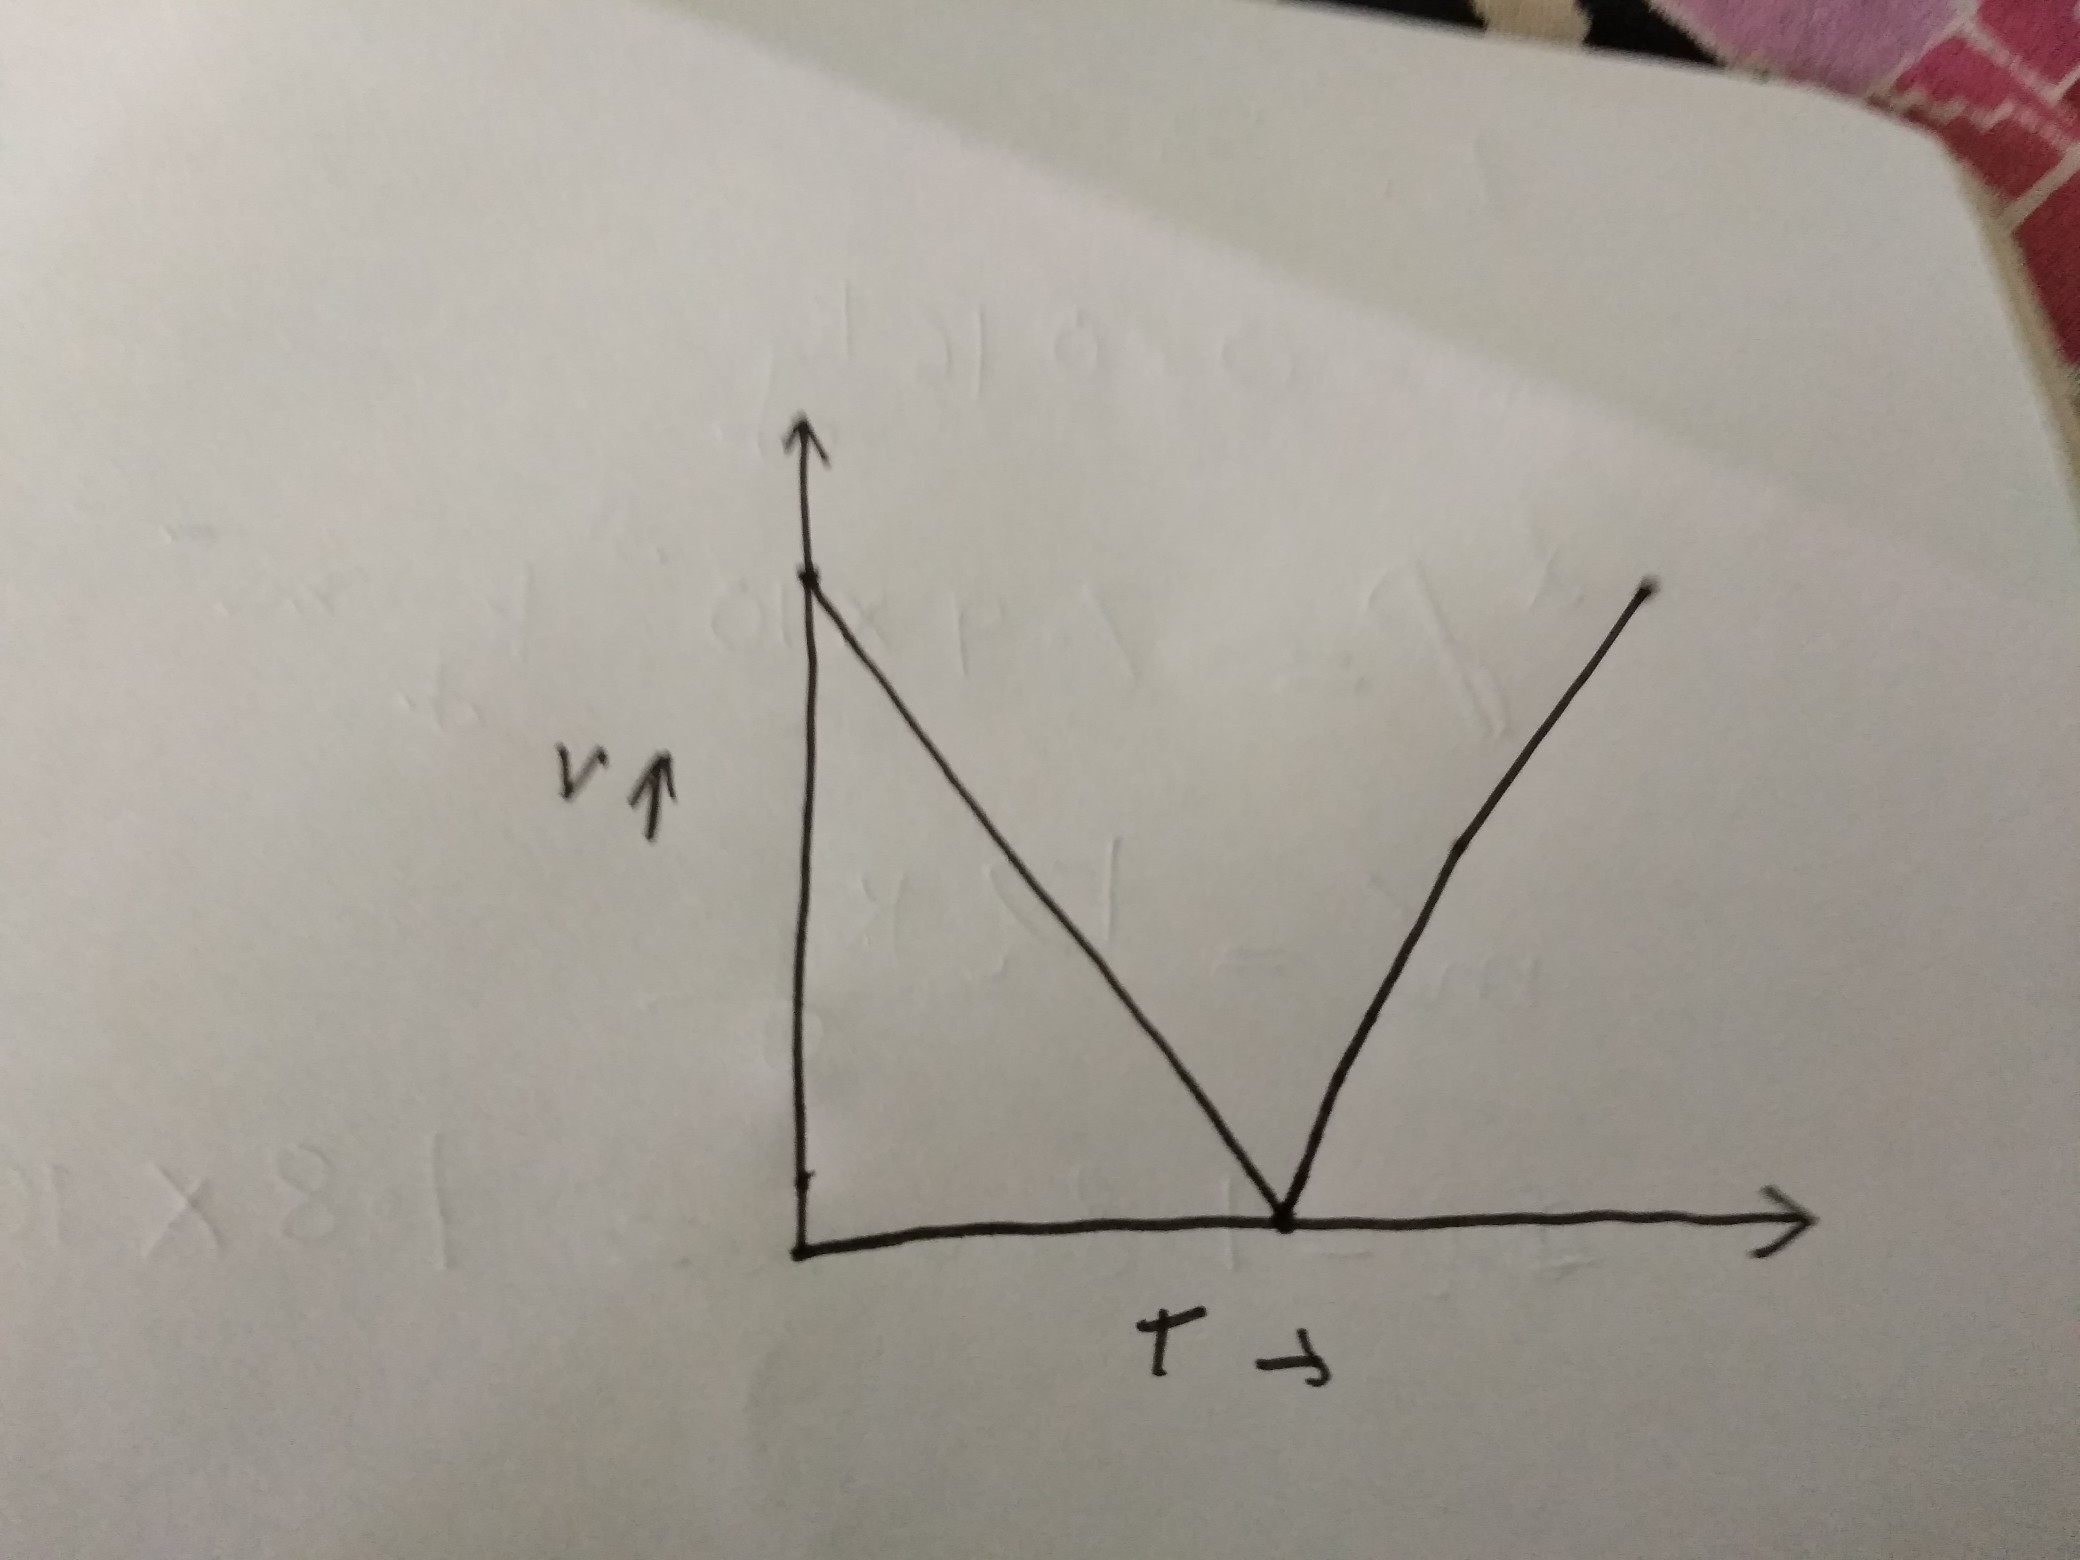 Draw Velocity Versus Time Graph Of Stone Thrown Vertically